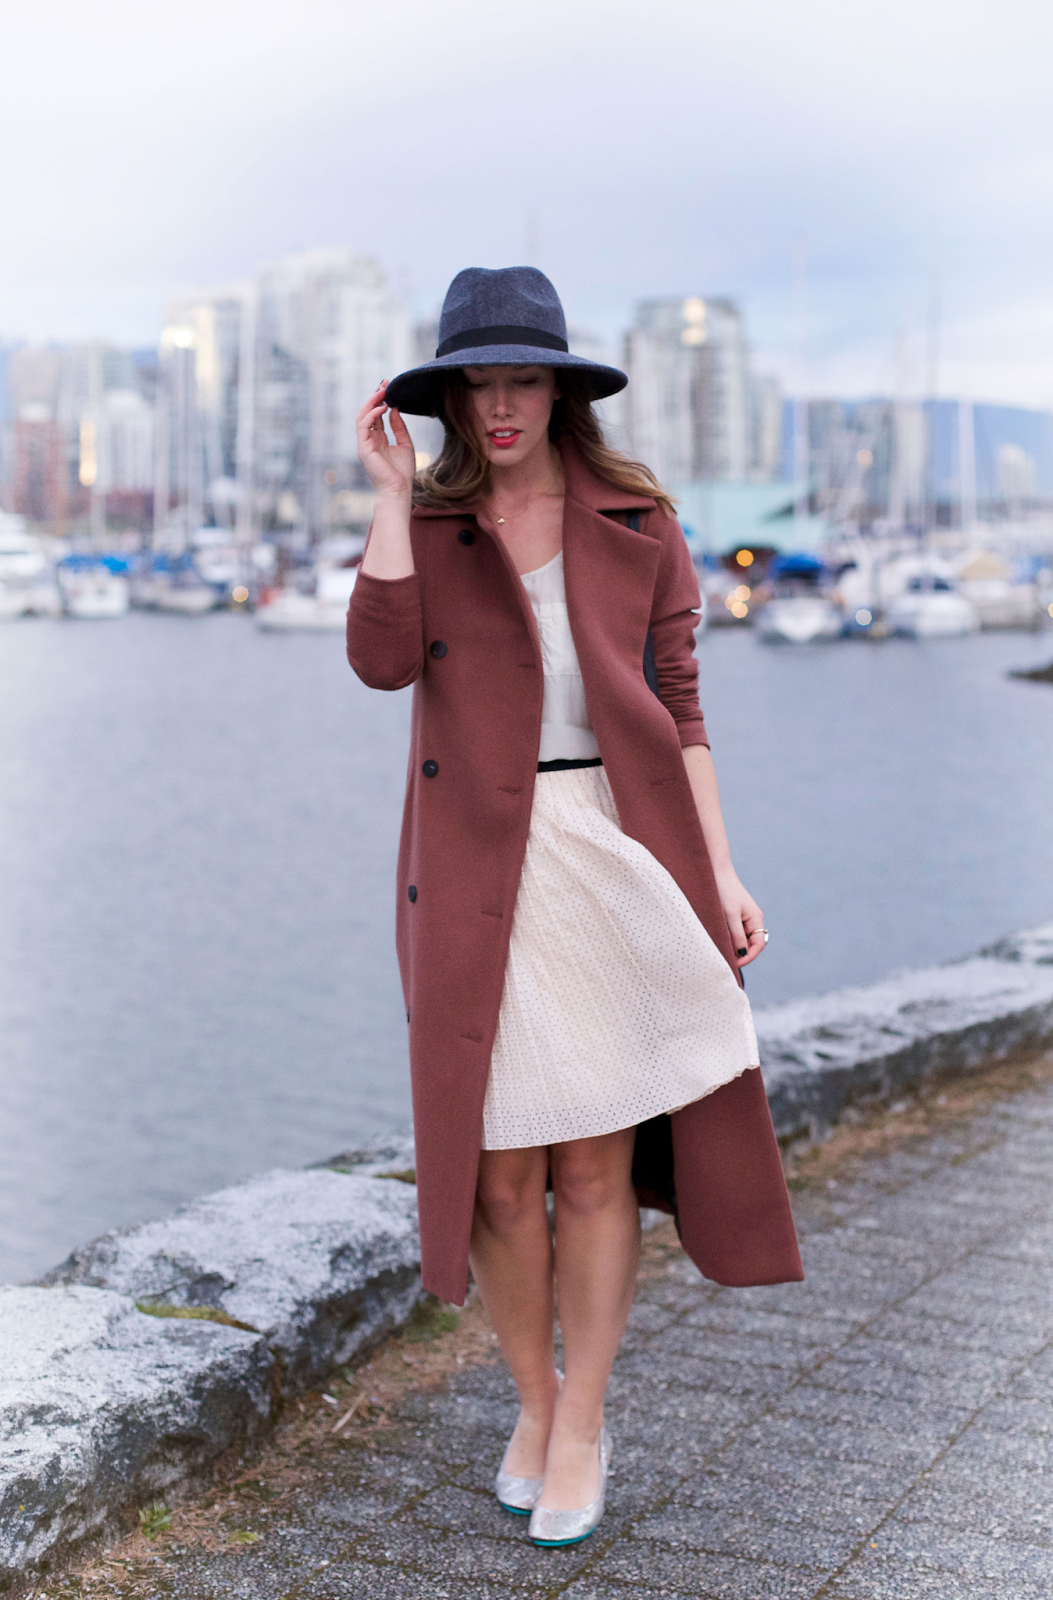 to vogue or bust, vancouver style blog, vancouver fashion blog, vancouver style, vancouver fashion, canadian fashion blog, alexandra grant, tieks flats, tieks giveaway, joe fresh tank top, joe fresh pleated skirt, tieks flats, obakki coat, french connection fedora hat